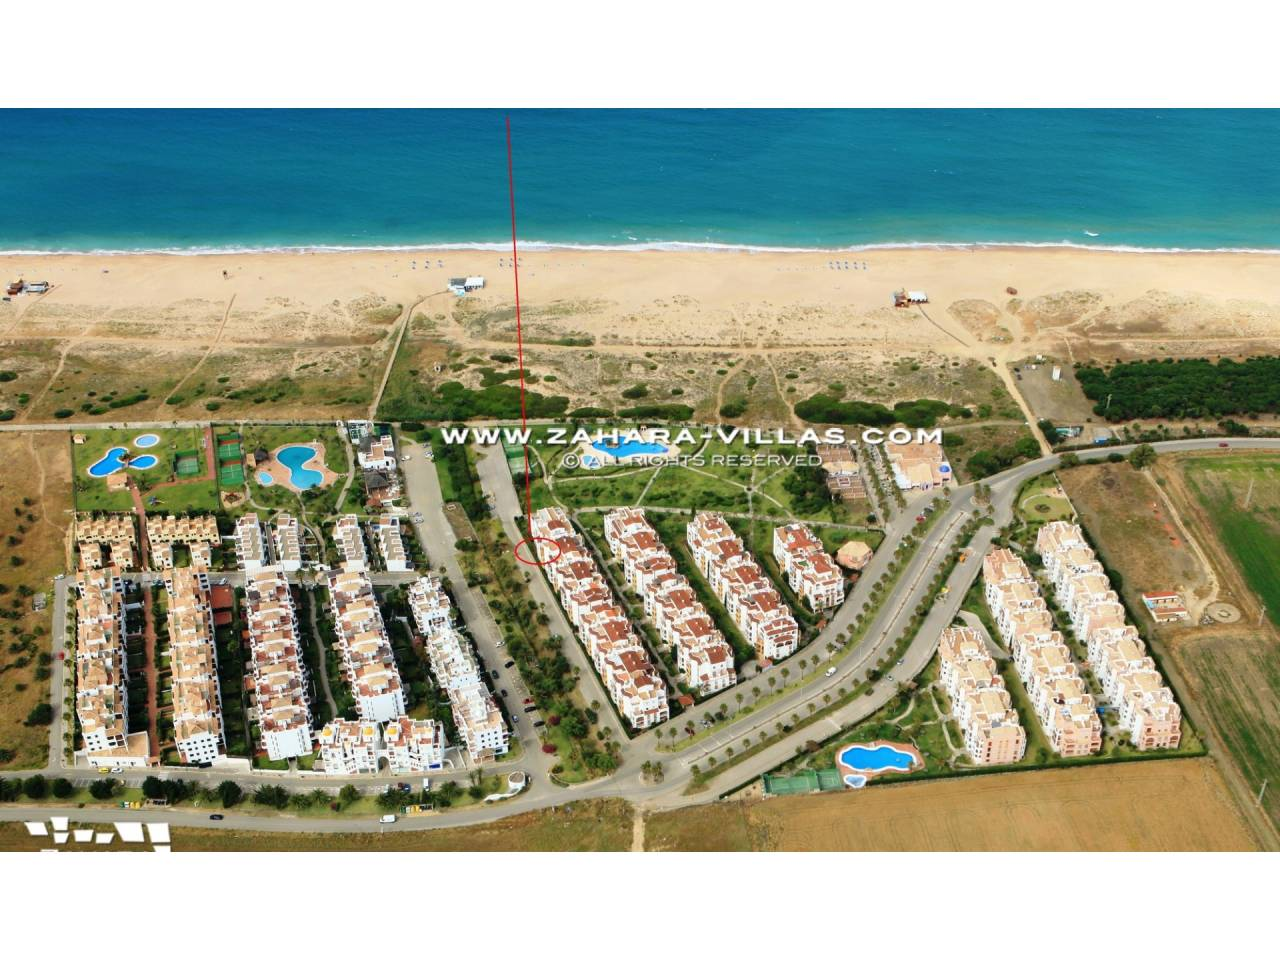 Imagen 2 de Apartment for sale in Zahara de los Atunes